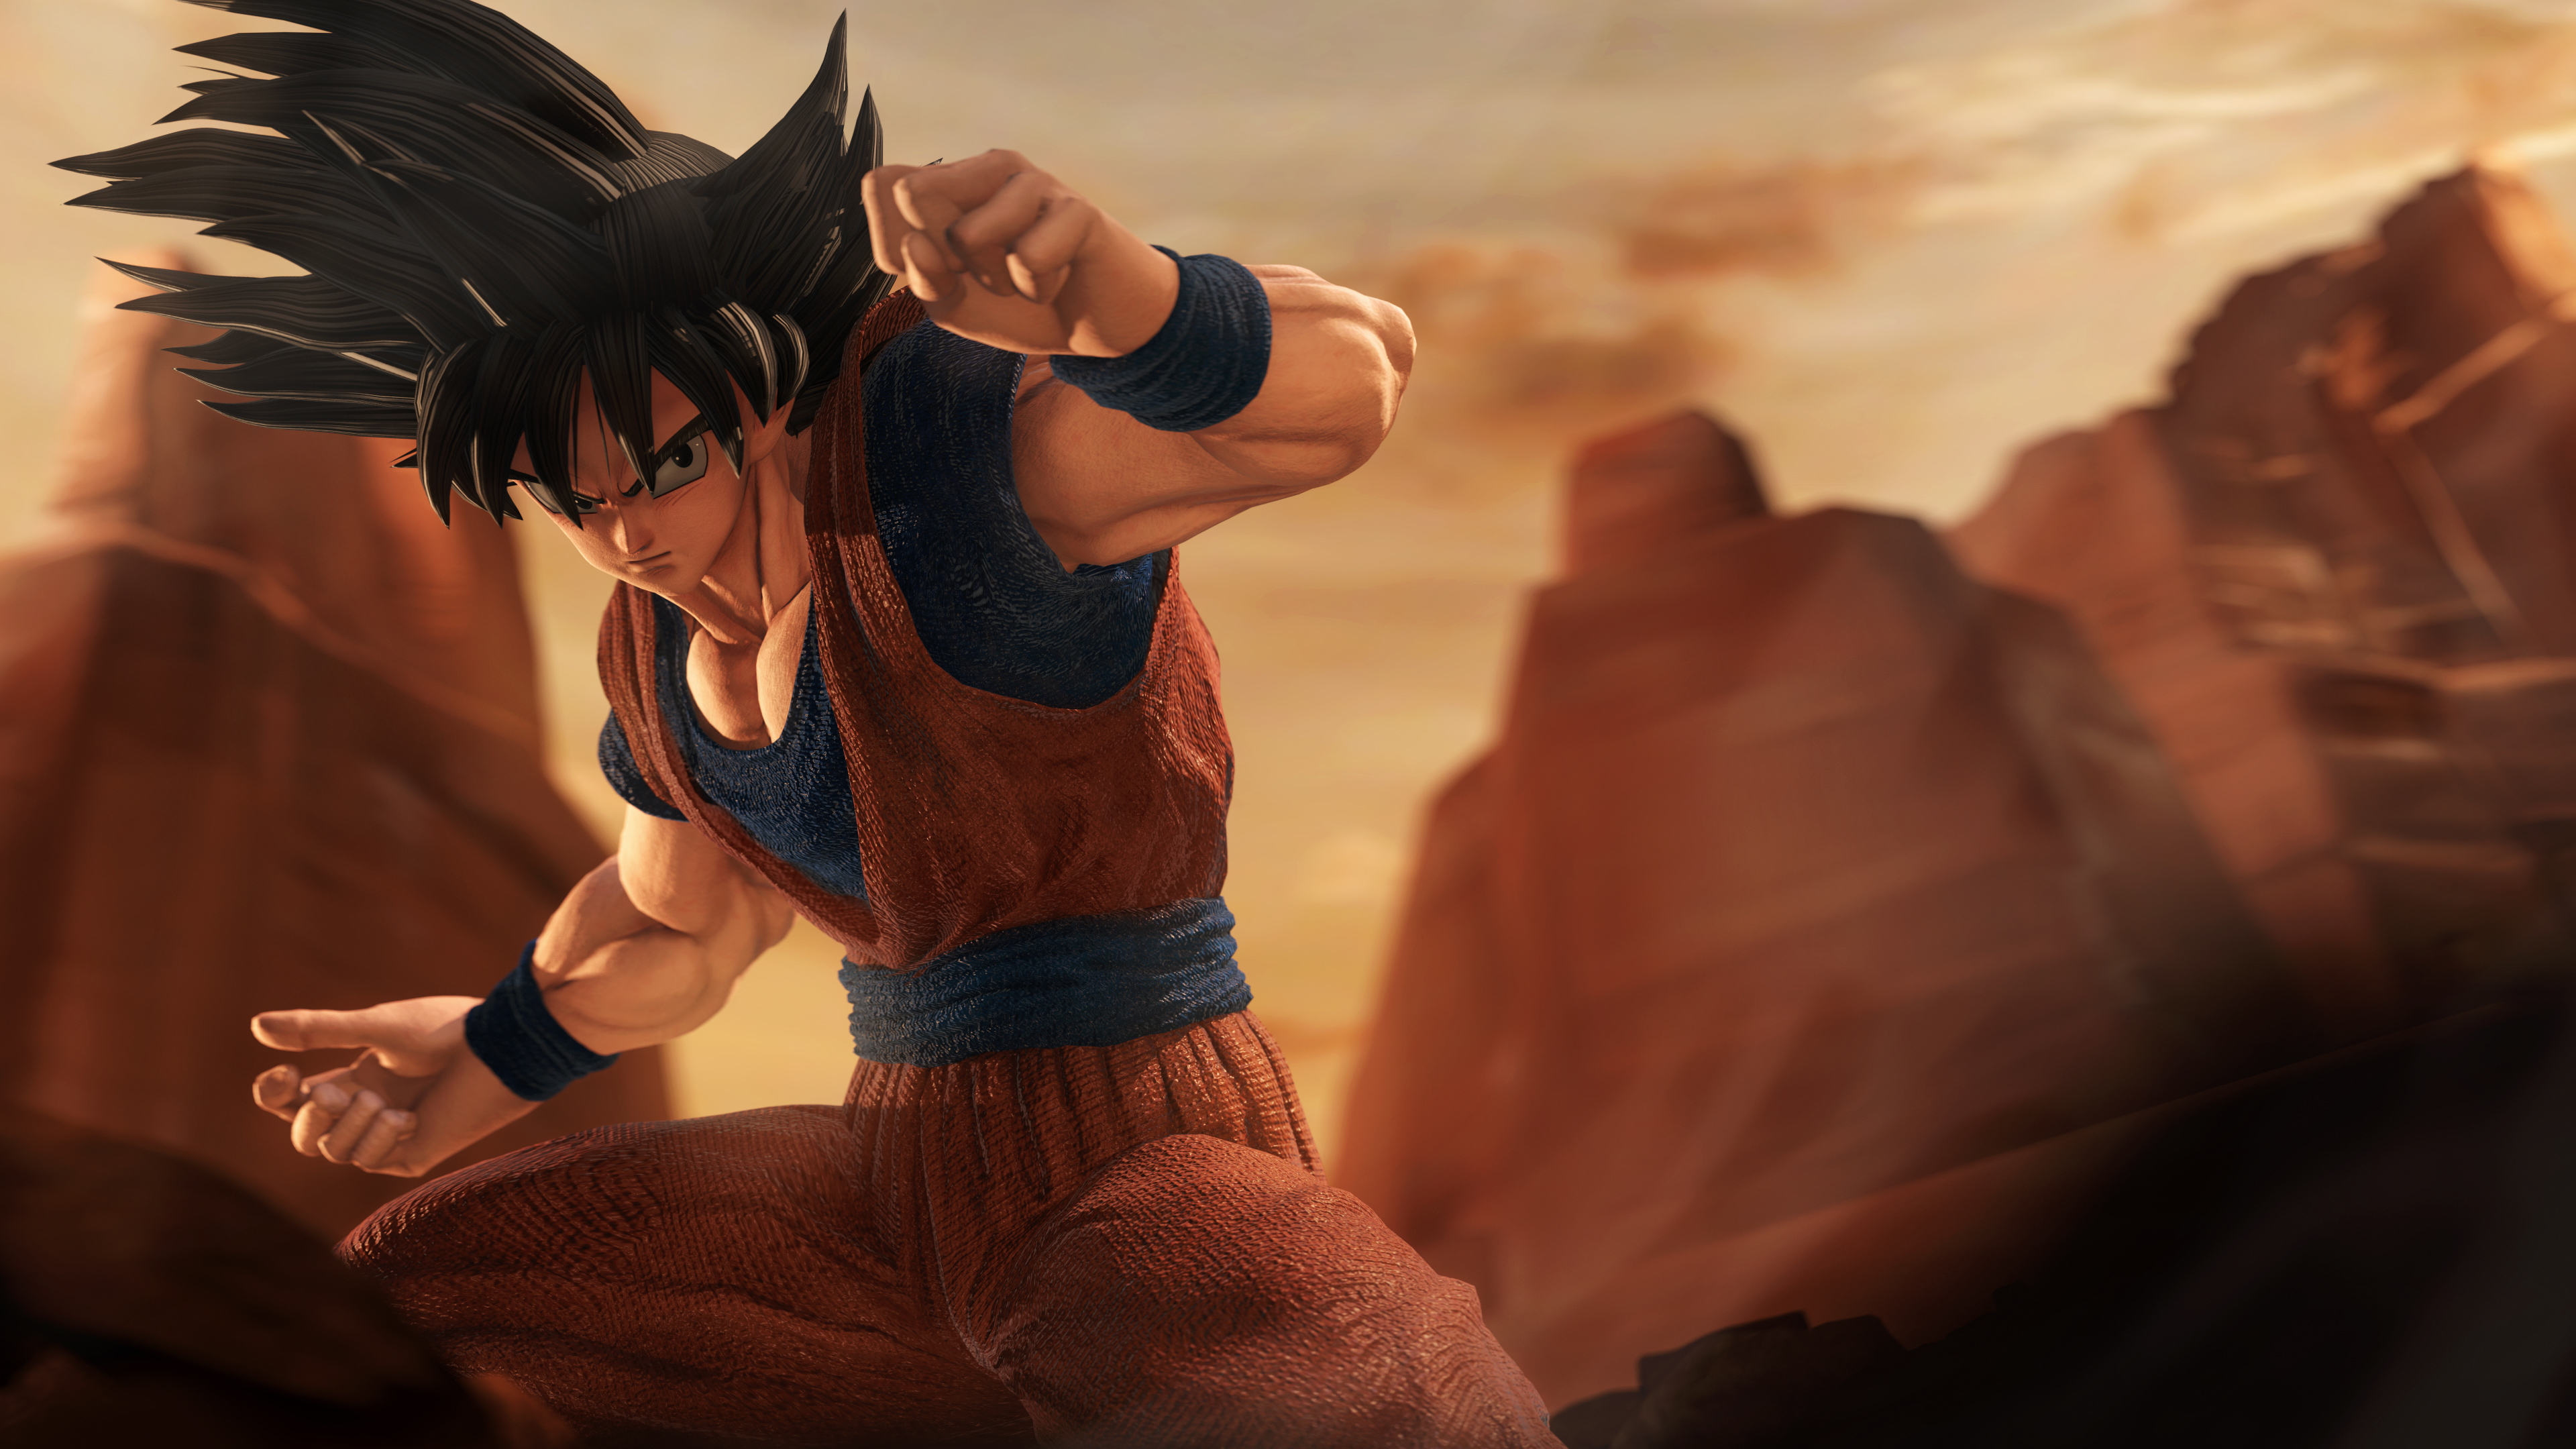 Goku Wallpaper Hd Anime 4k Wallpapers Images Photos And Background